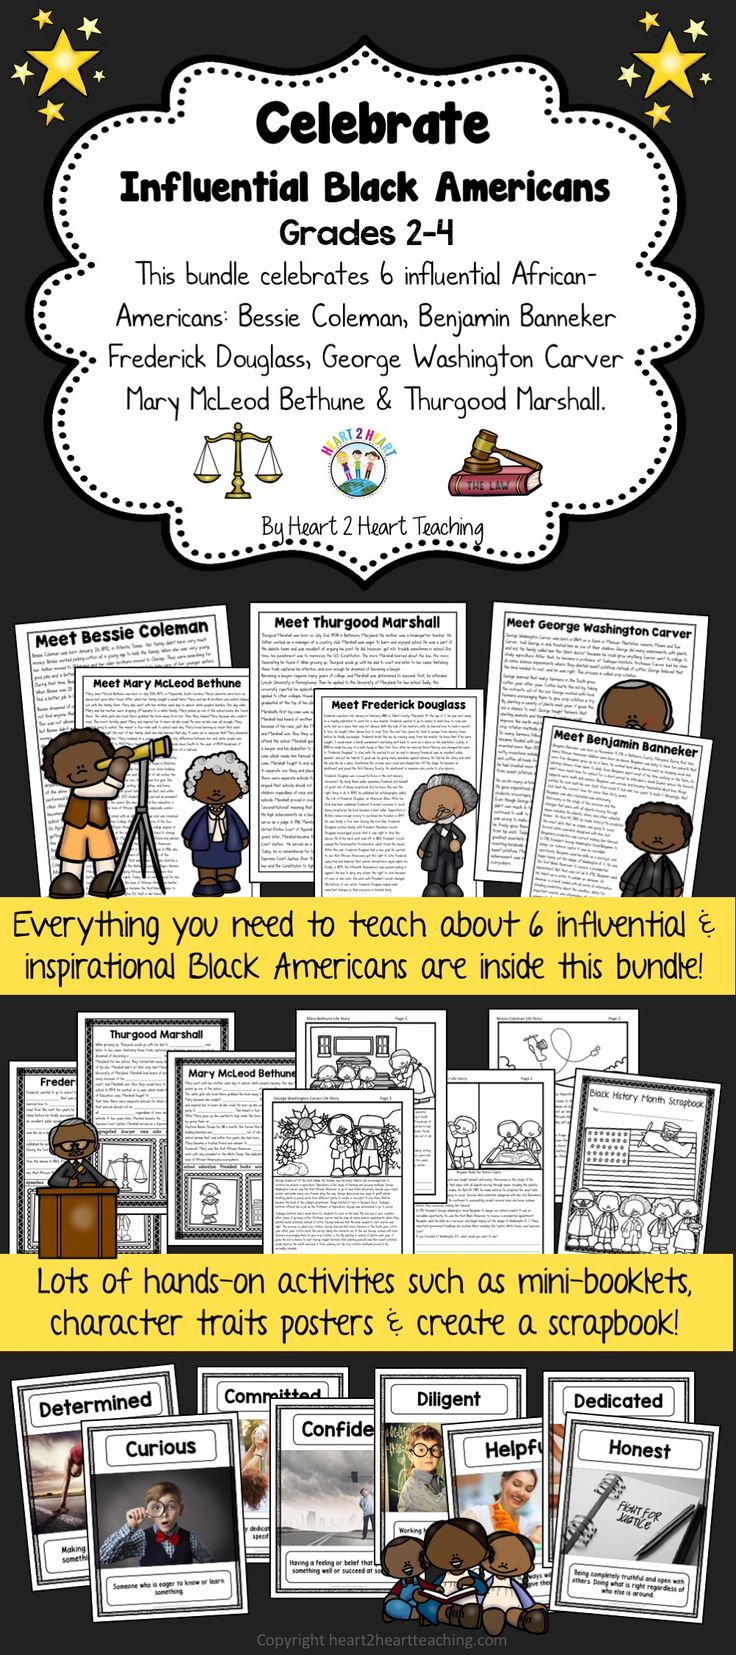 Learning about influential and inspirational Black Americans has never been more fun! This BUNDLE has a variety of activities to celebrate and learn about six influential African-Americans: Bessie Coleman, Benjamin Banneker, Frederick Douglass, George Washington Carver, Mary McLeod Bethune, and Thurgood Marshall. This BUNDLE has it all!